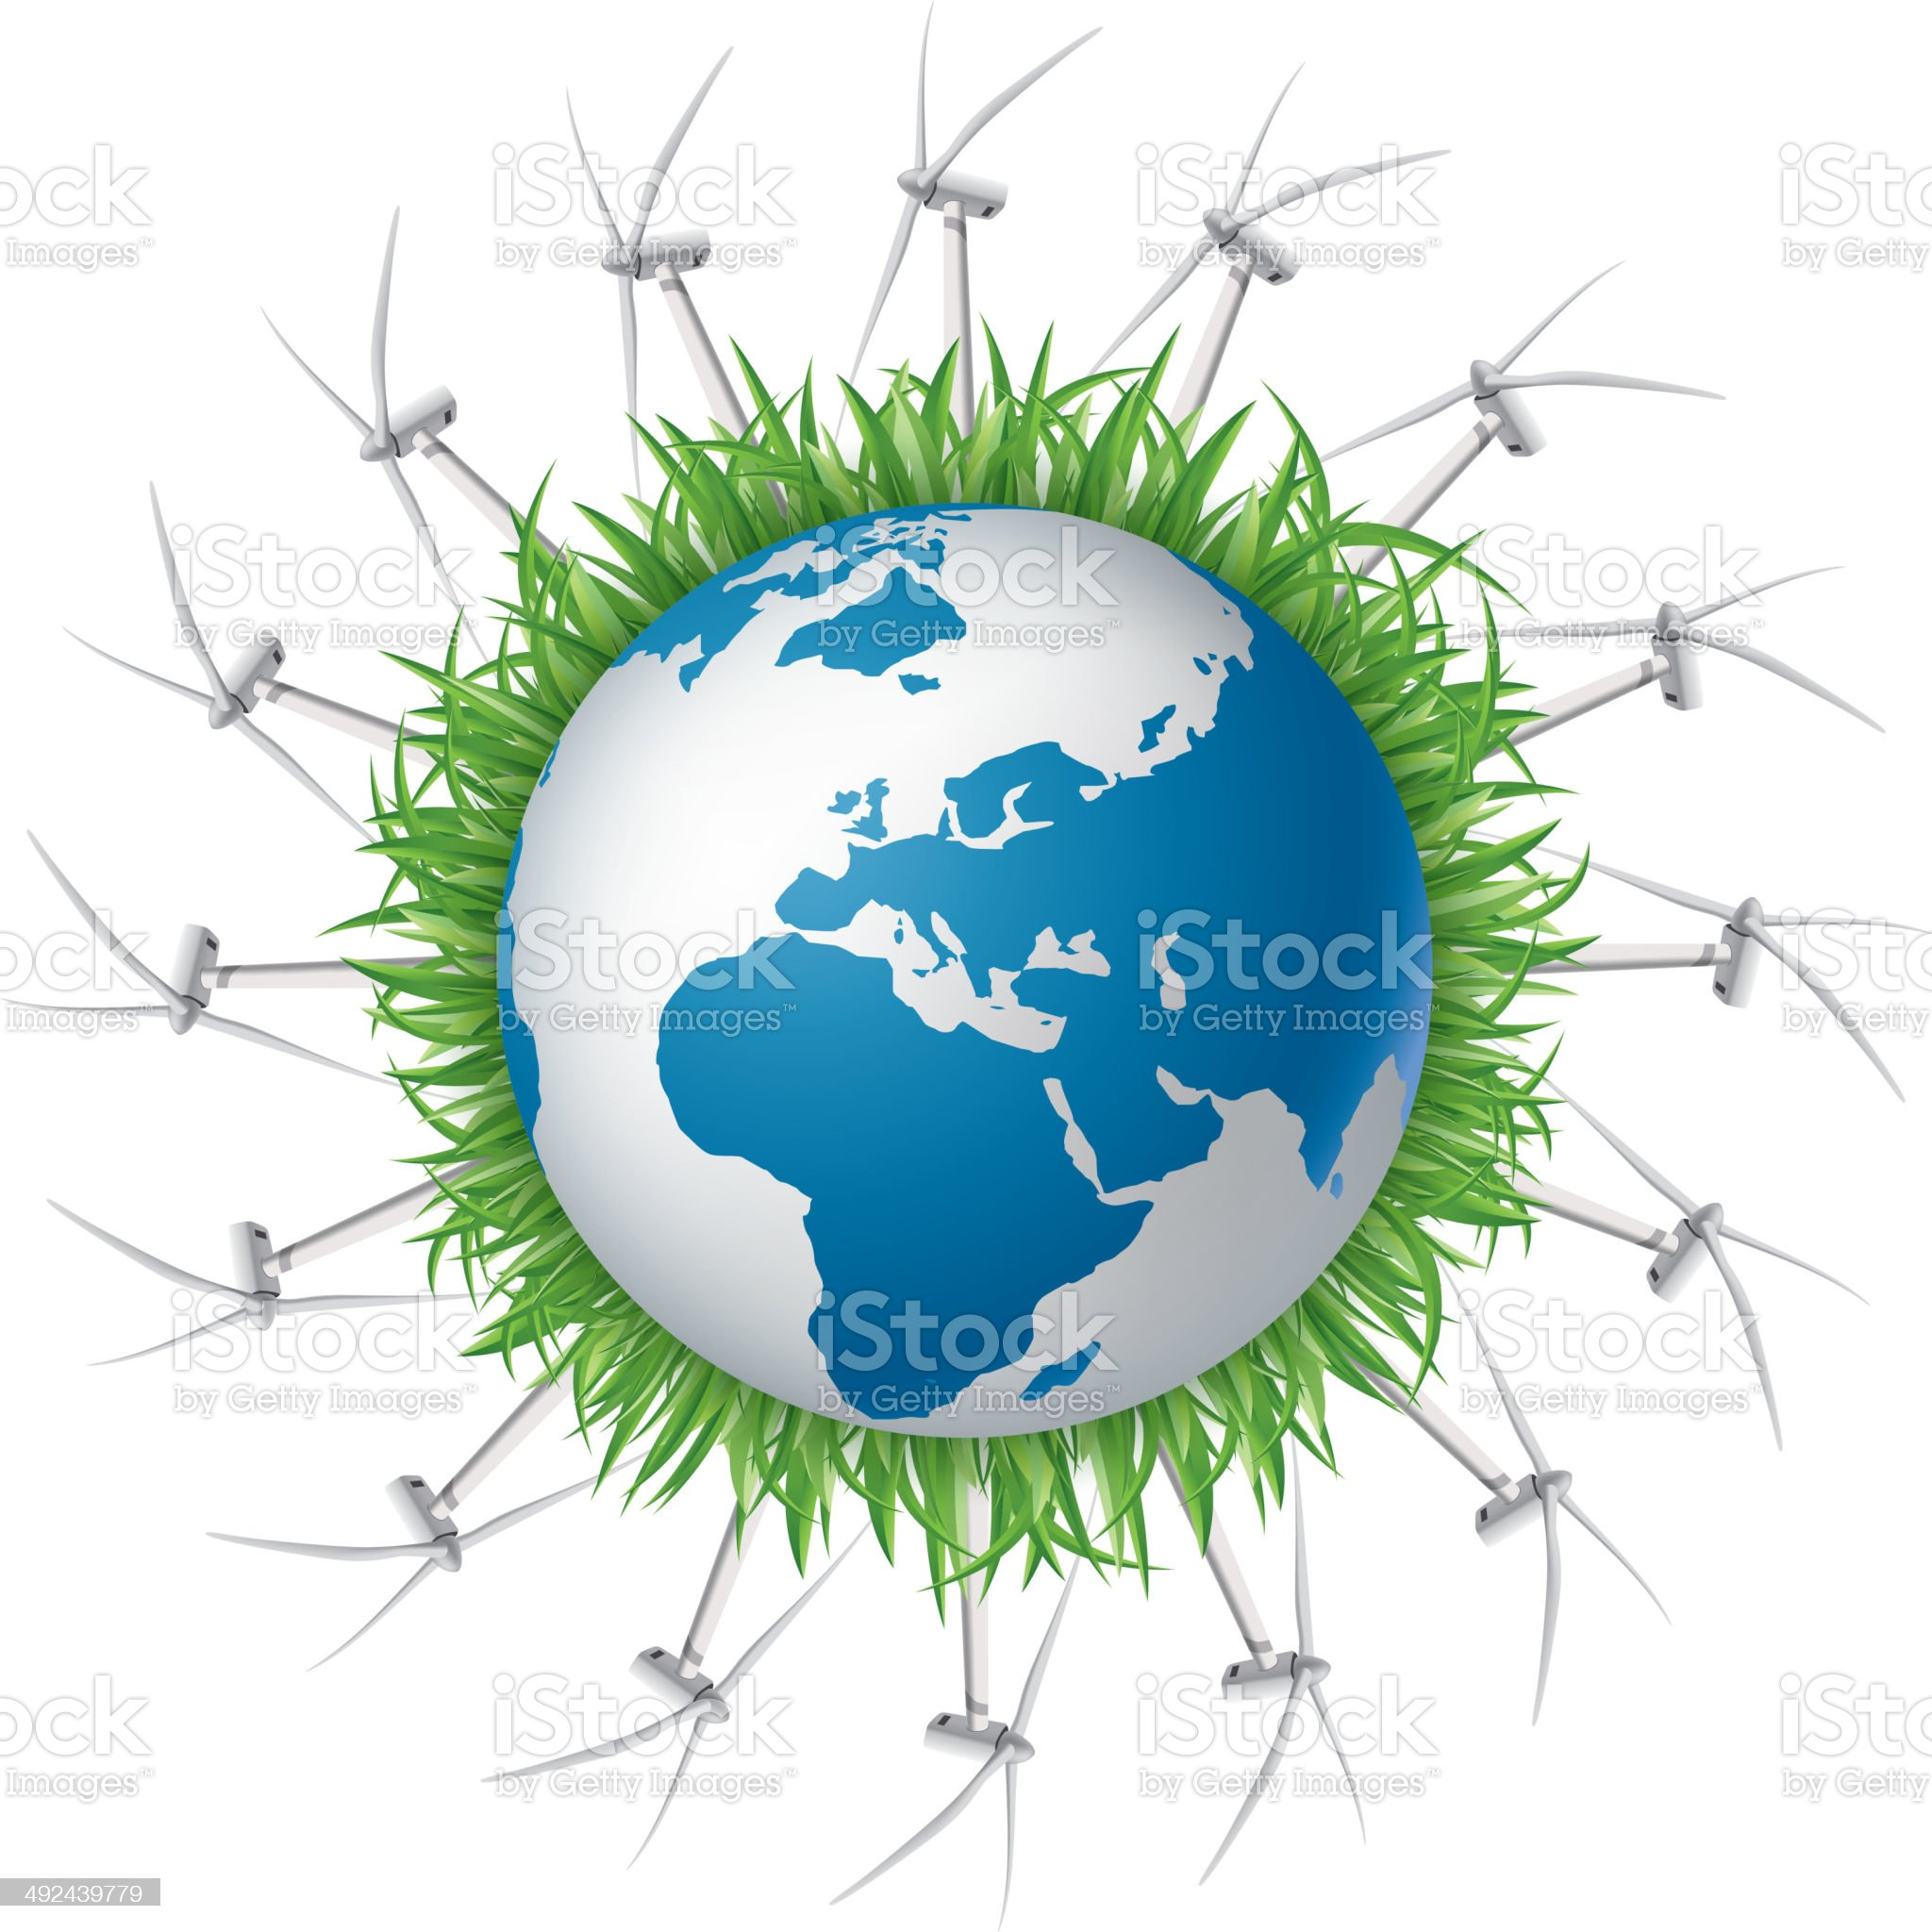 Wind Turbines round the earth royalty-free stock vector art